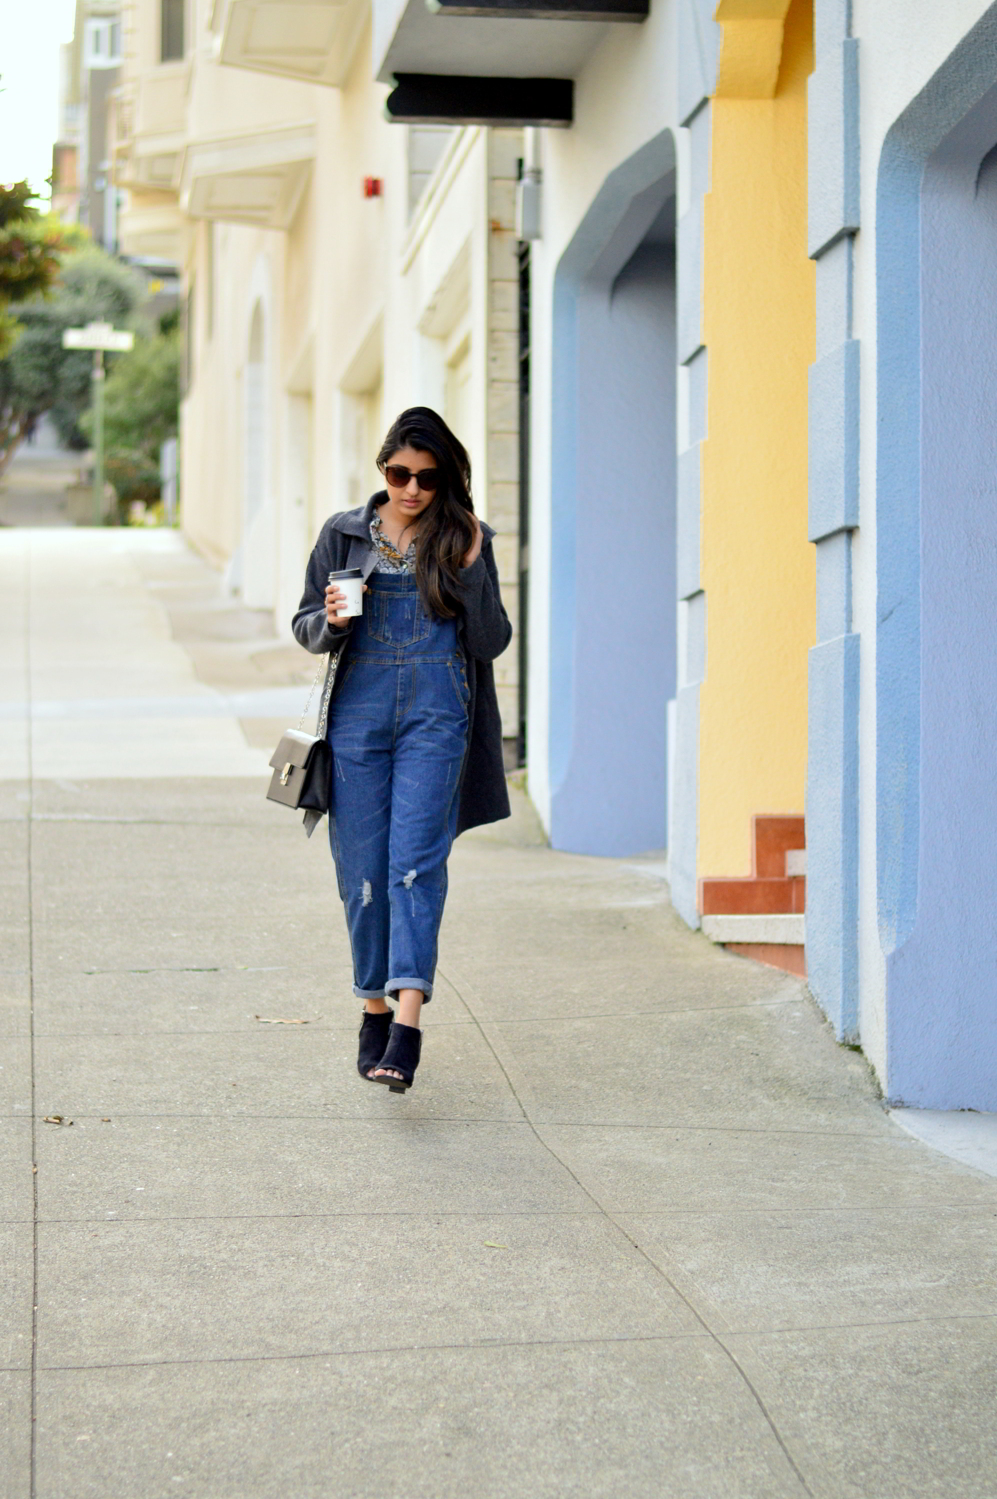 boyfriend-overalls-floral-blouse-spring-style-bud-stop-san-francisco-blogger-outfit 7